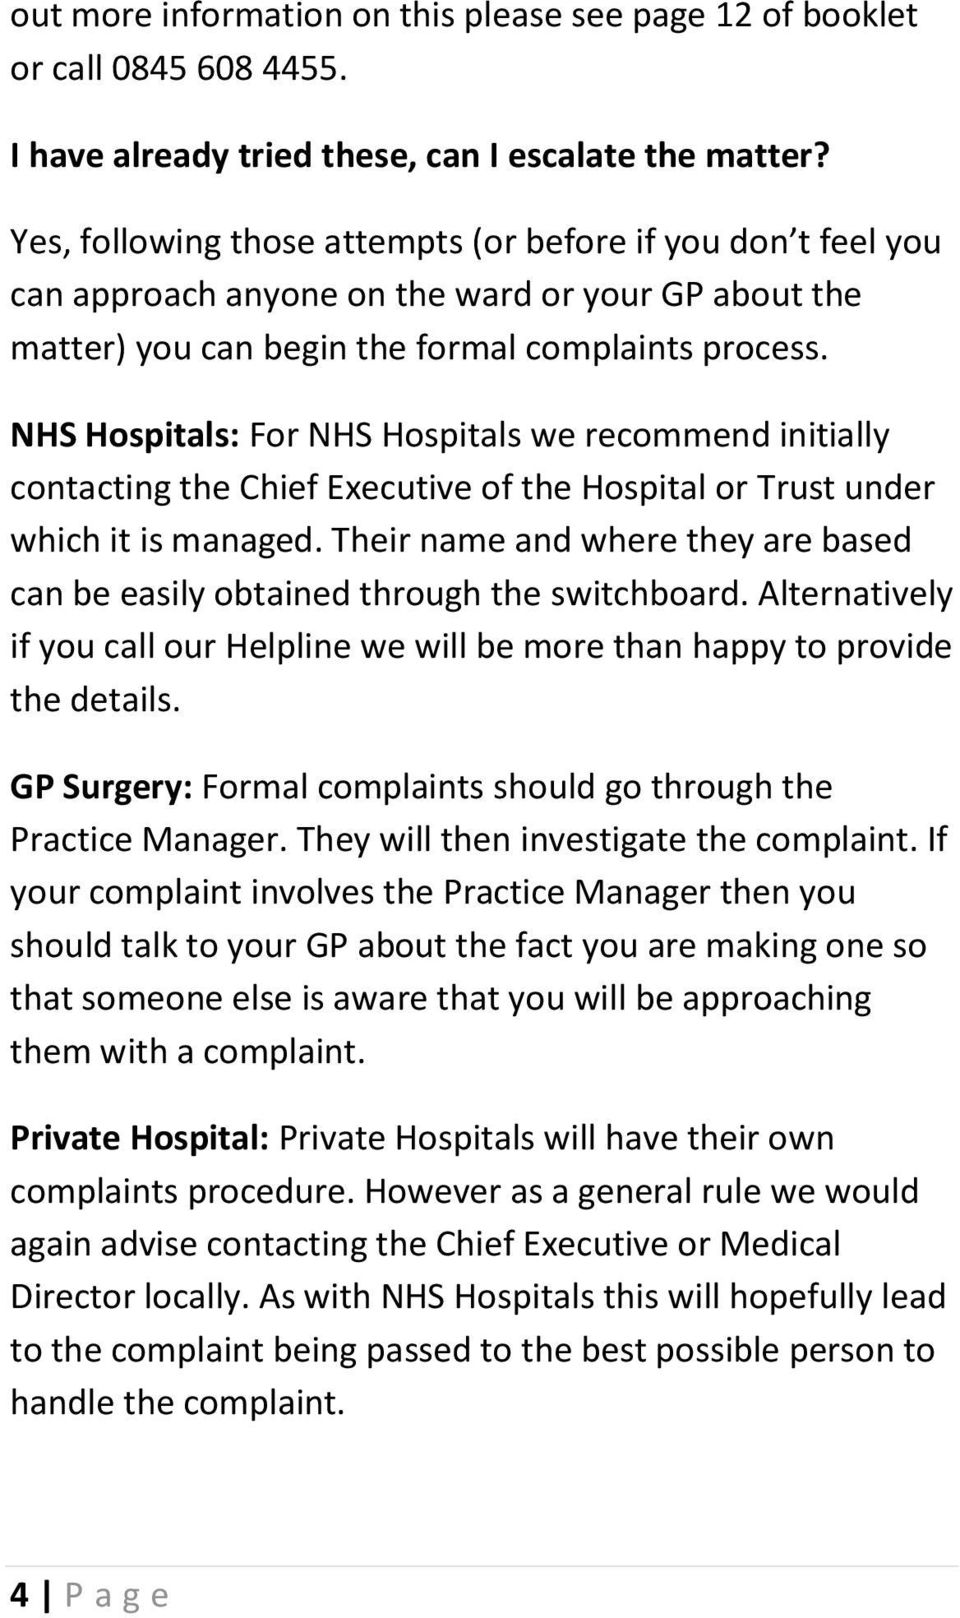 NHS Hospitals: For NHS Hospitals we recommend initially contacting the Chief Executive of the Hospital or Trust under which it is managed.